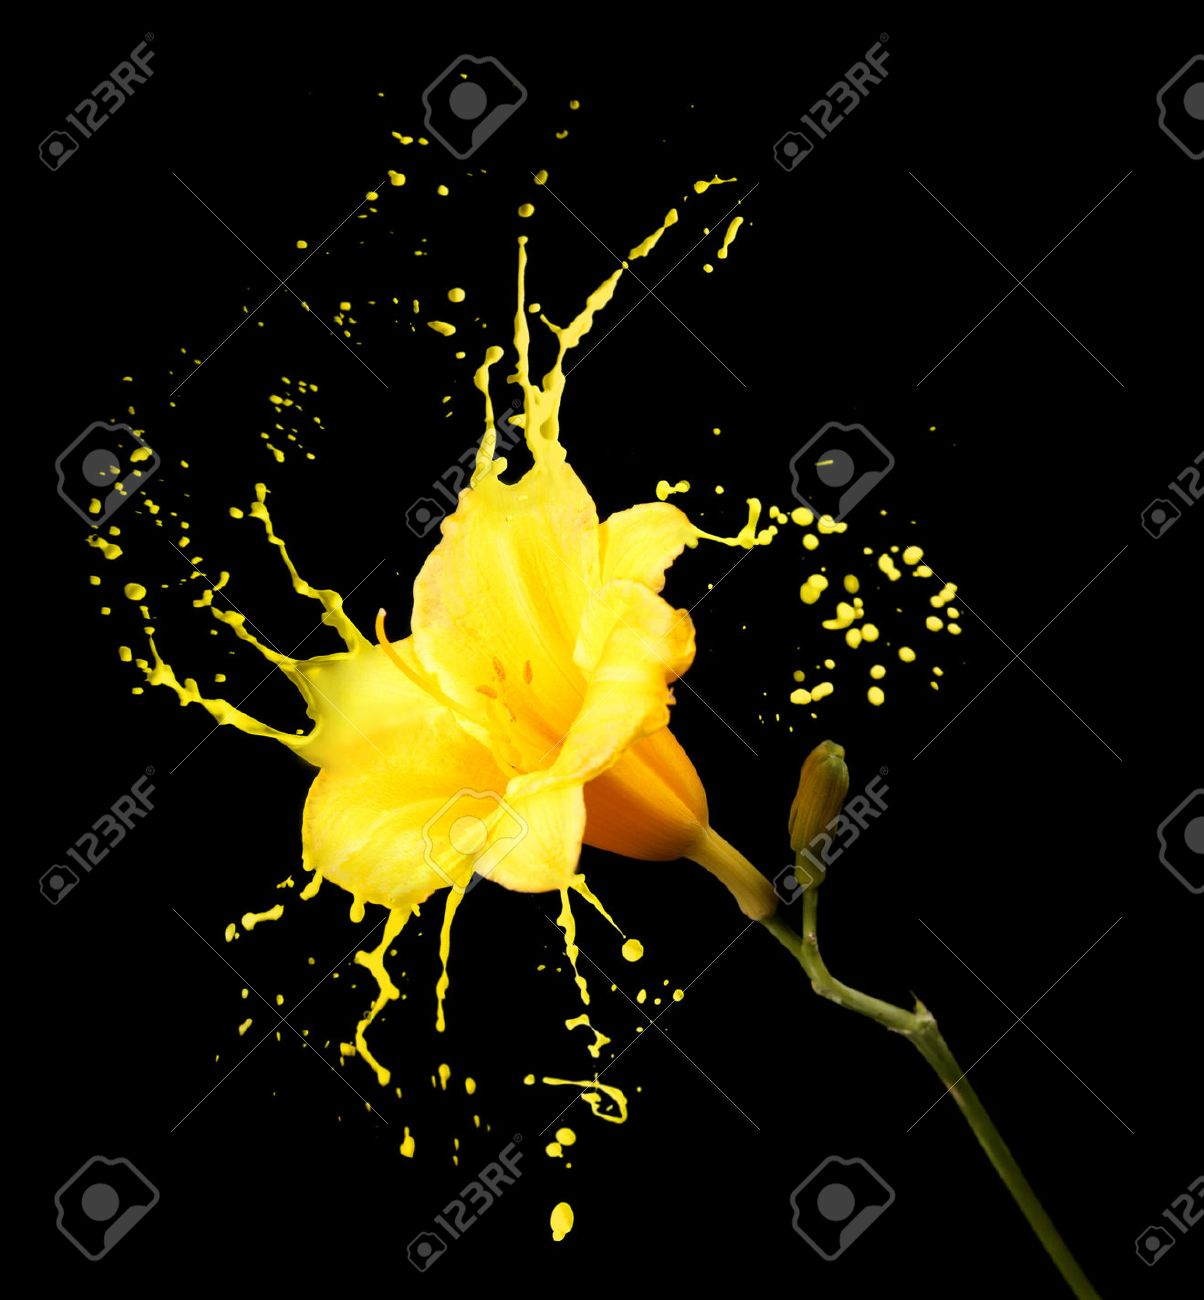 bright flower with yellow splashes on black background - 48697600